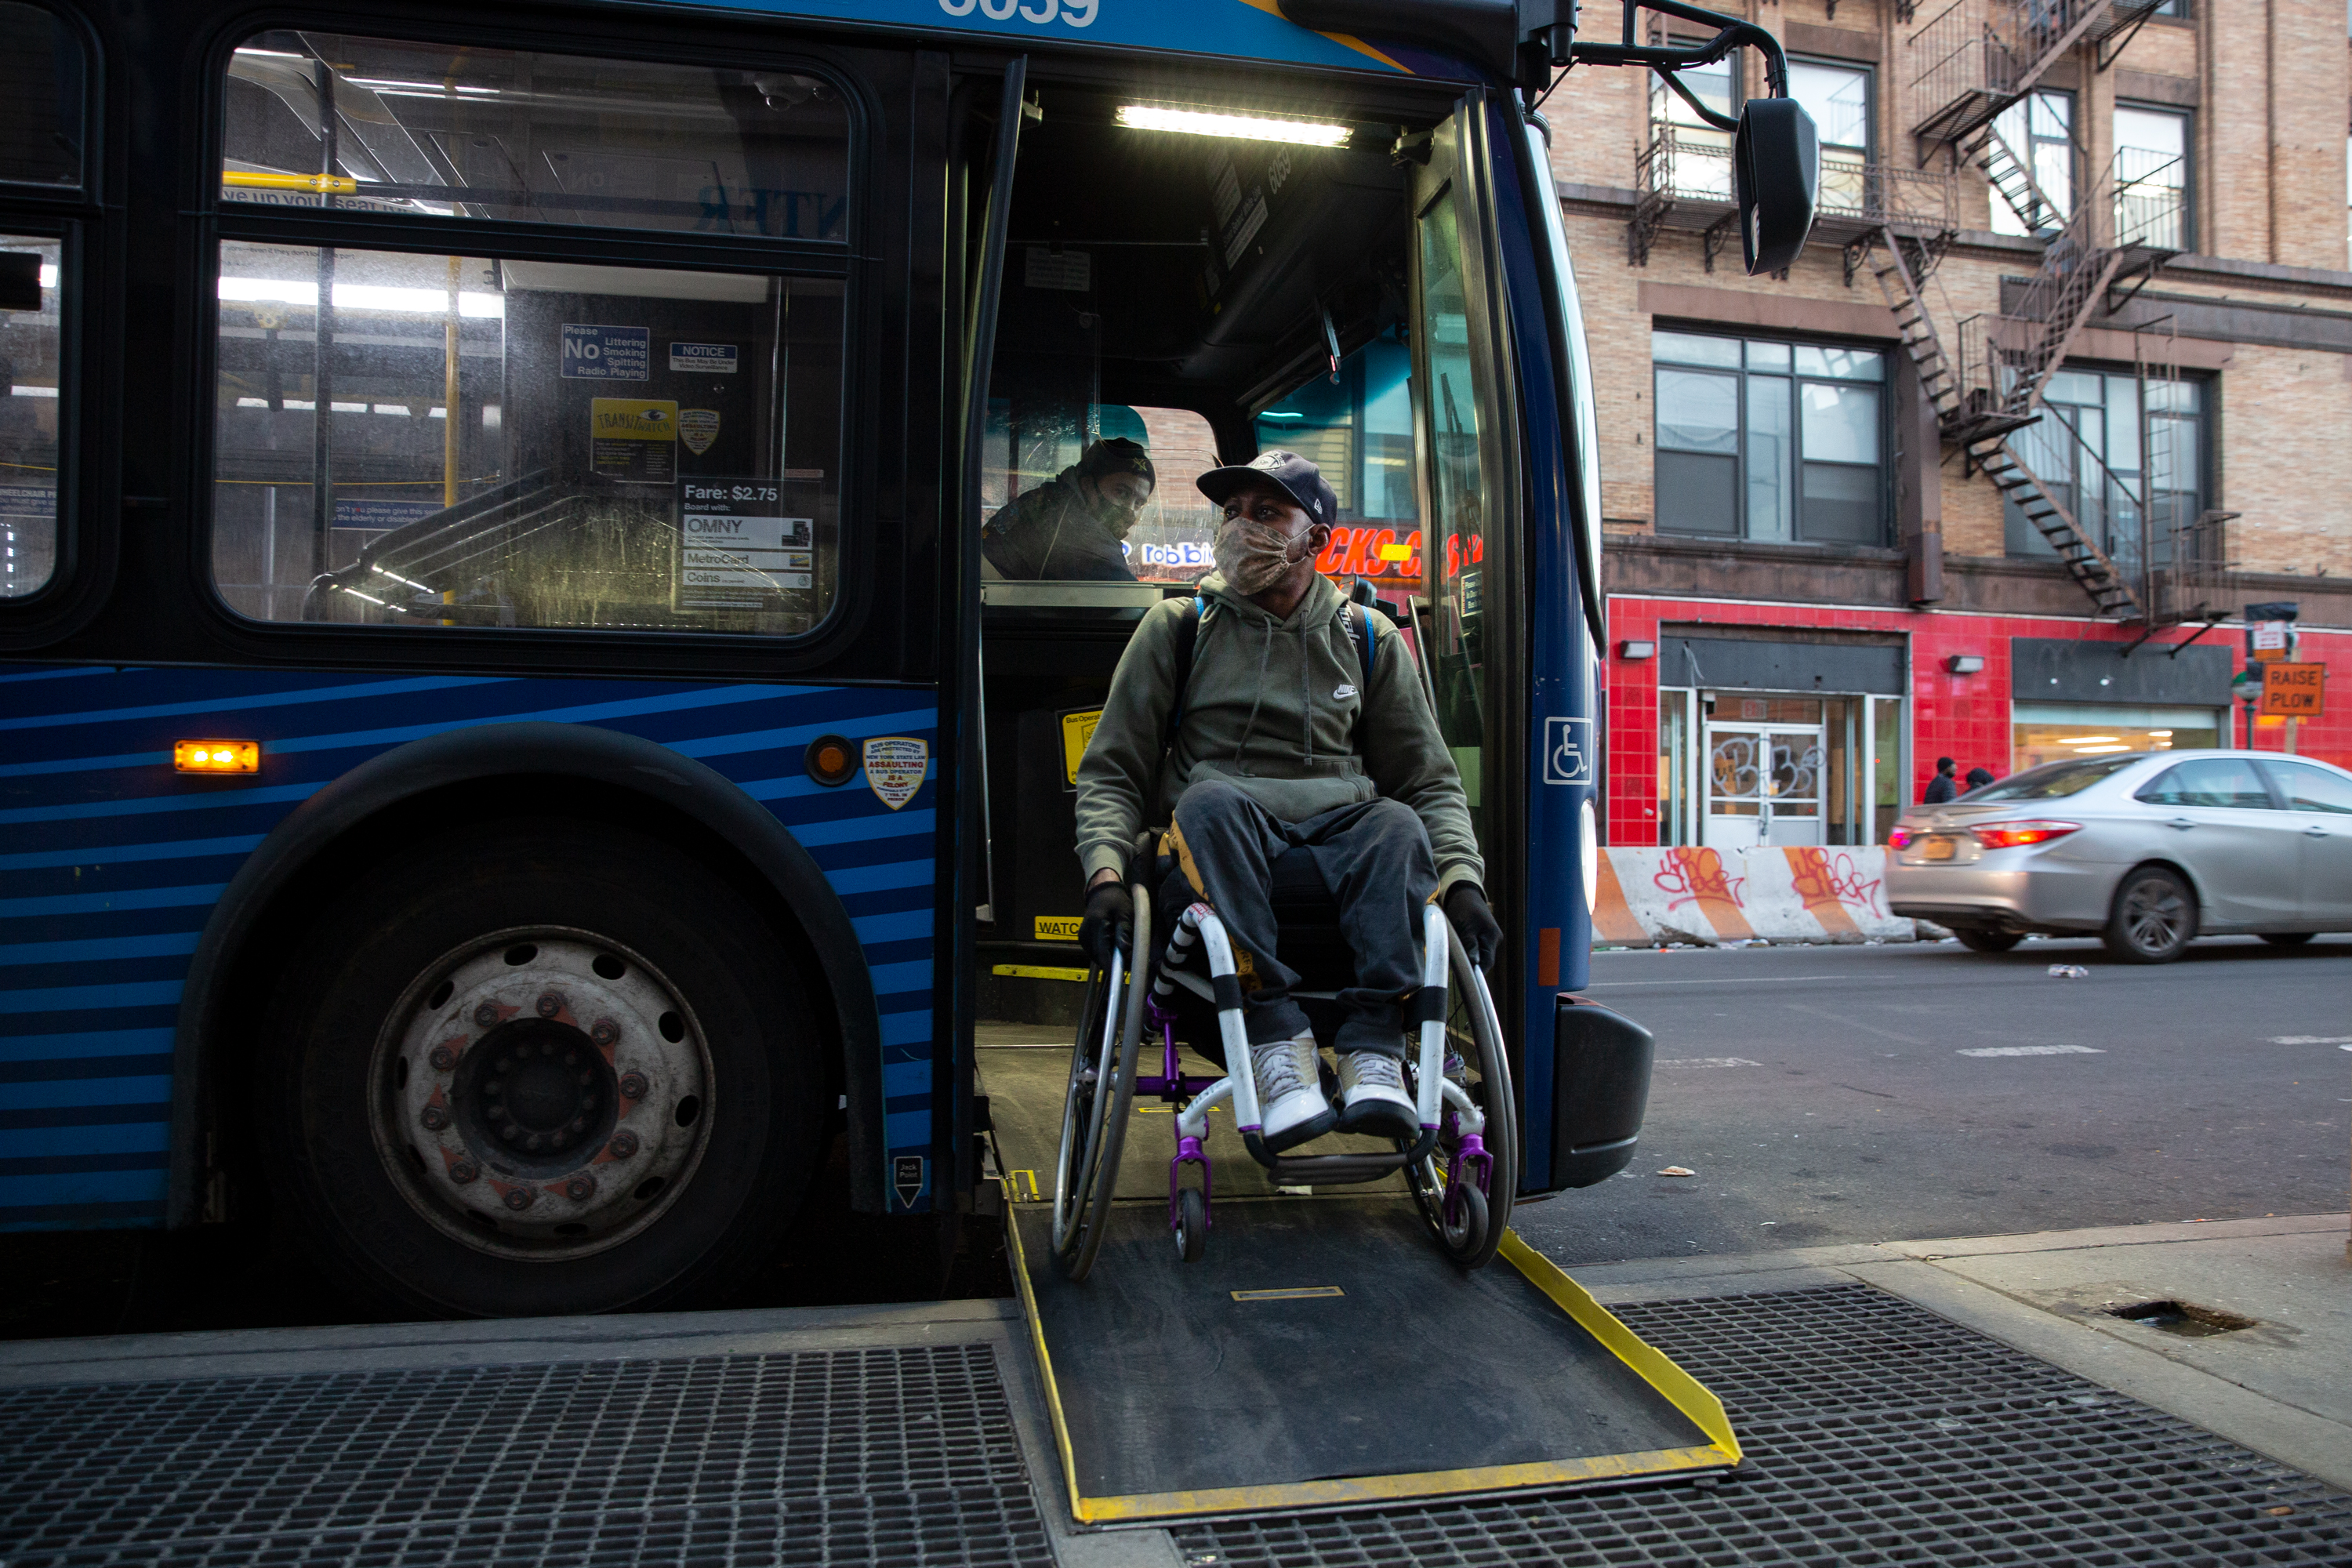 Saheed Adebayo Aare takes an M35 bus to East Harlem at the start of a three-hour commute from Wards Island to Carteret, N.J., Feb. 24, 2021.